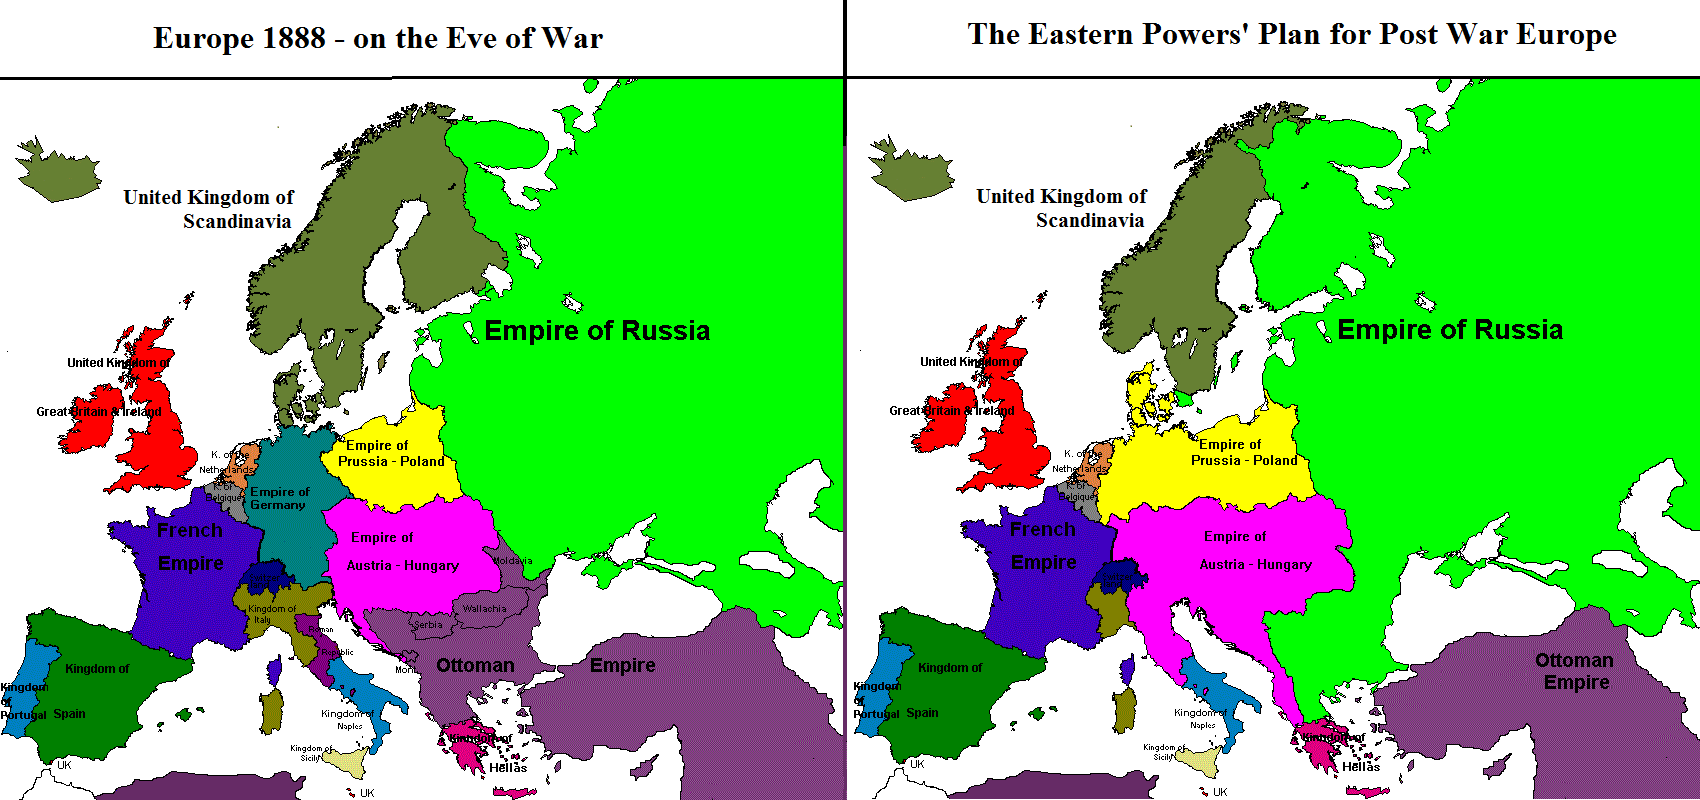 https://www.alternatehistory.com/forum/attachments/eastern-nations-war-aims-comparison-png.160879/